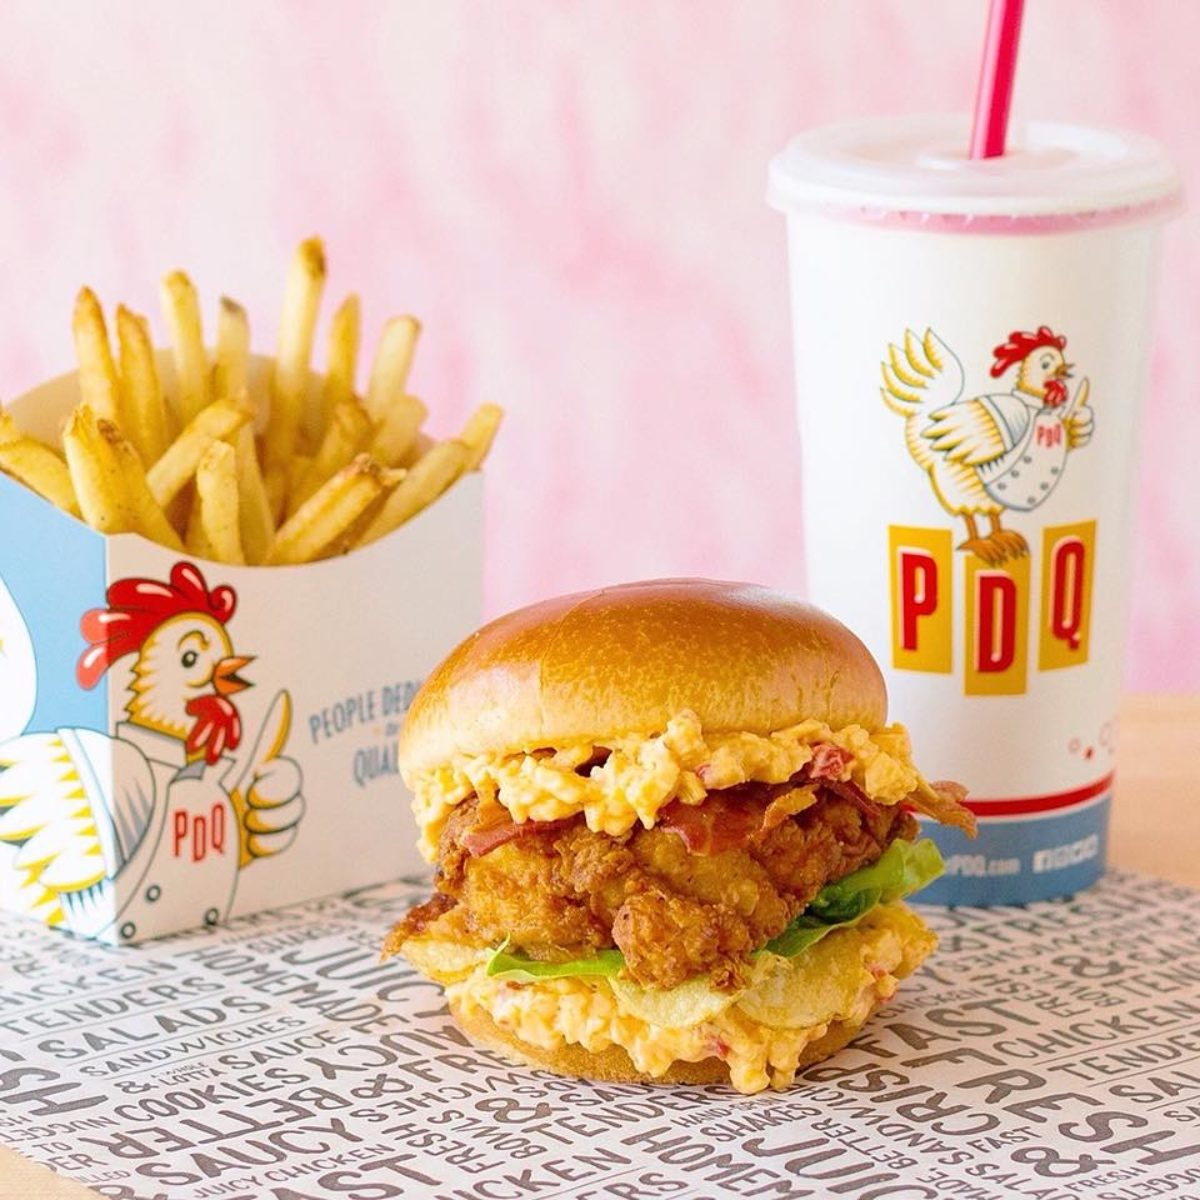 PDQ fries, burger and shake